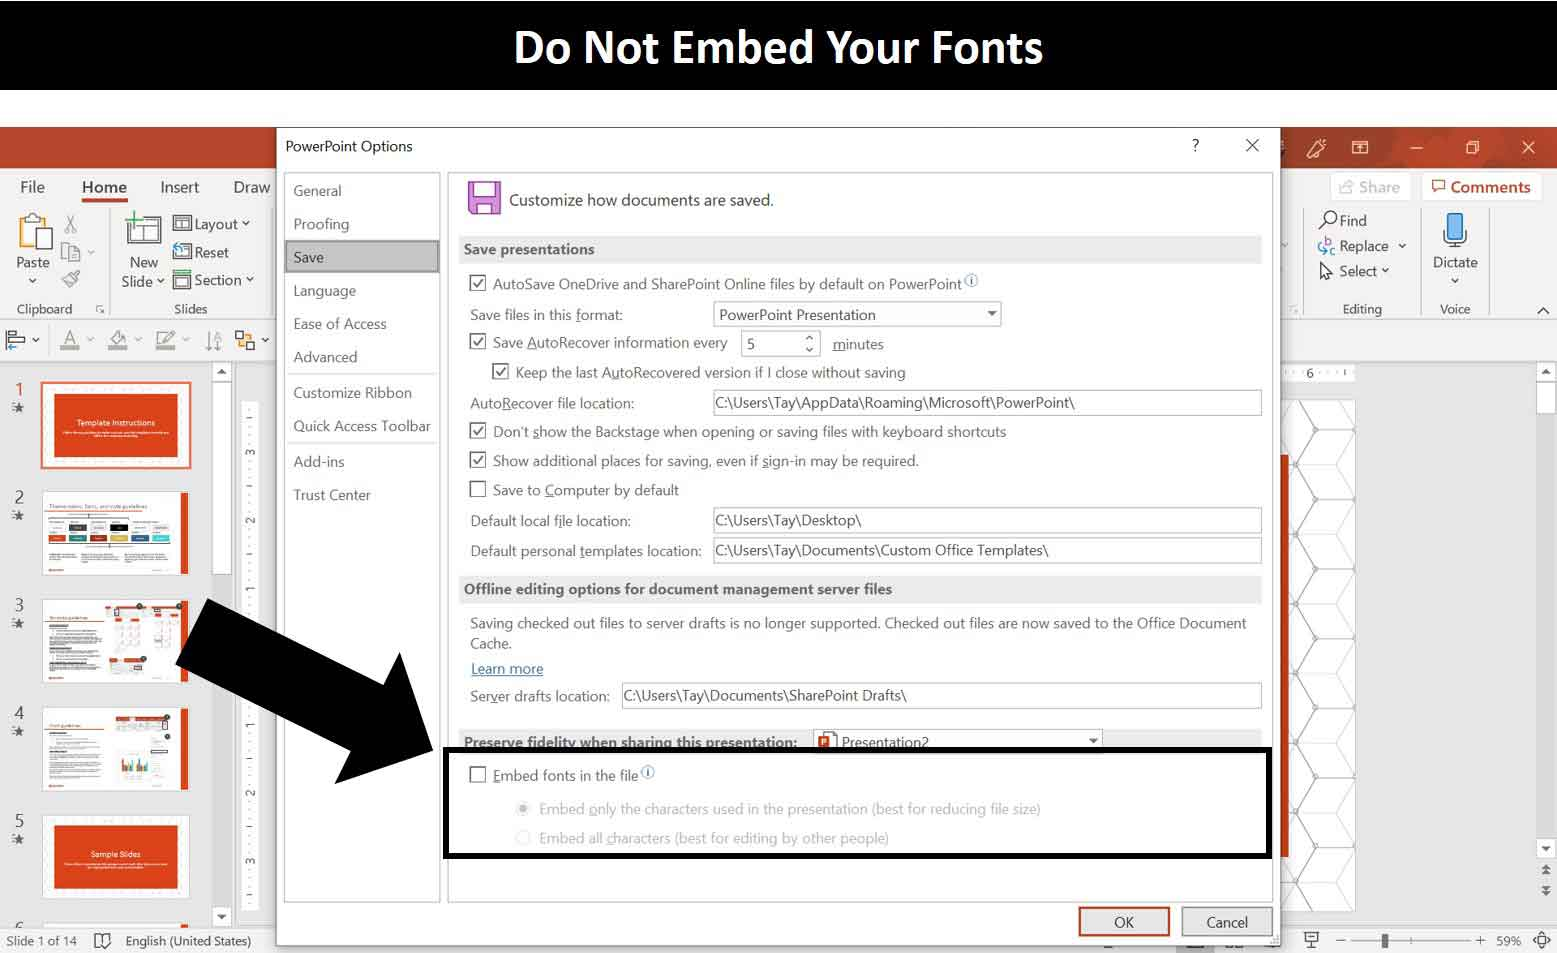 In the PowerPoint options you do not want to select Embed fonts in the file as they will mess up your PowerPoint templates